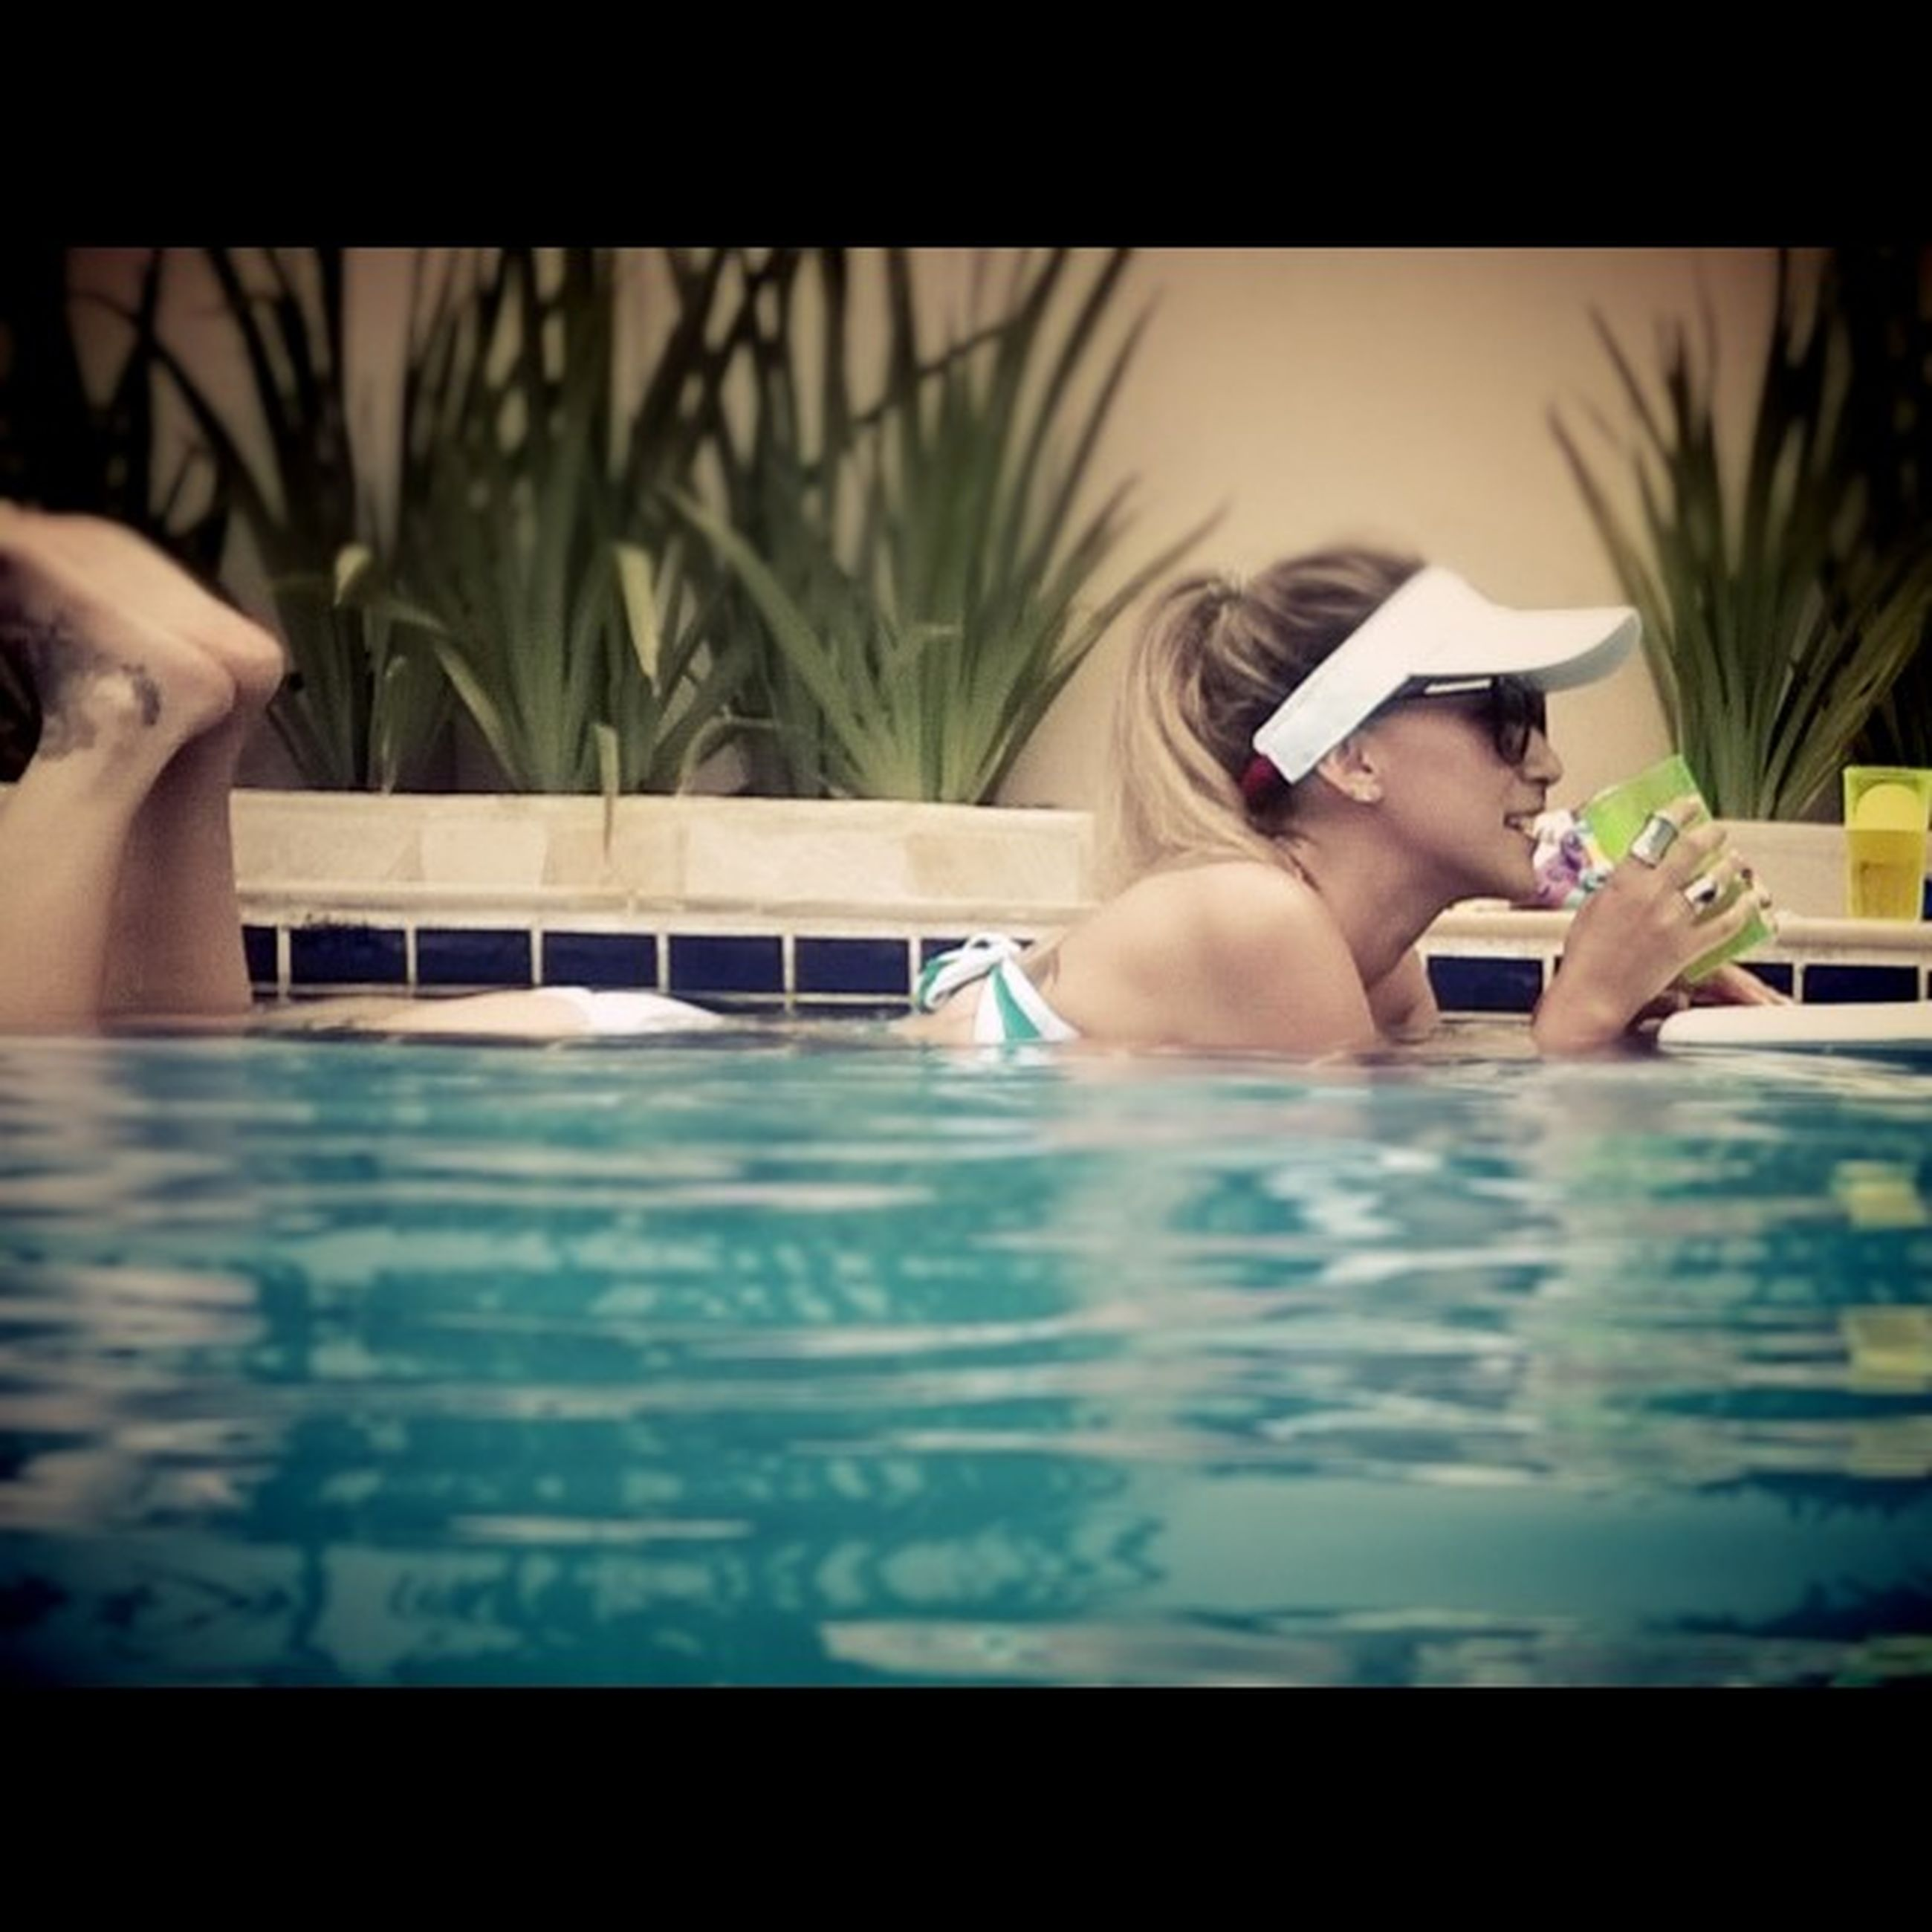 lifestyles, leisure activity, indoors, young adult, young women, person, long hair, holding, water, sitting, side view, auto post production filter, wireless technology, sensuality, relaxation, swimming pool